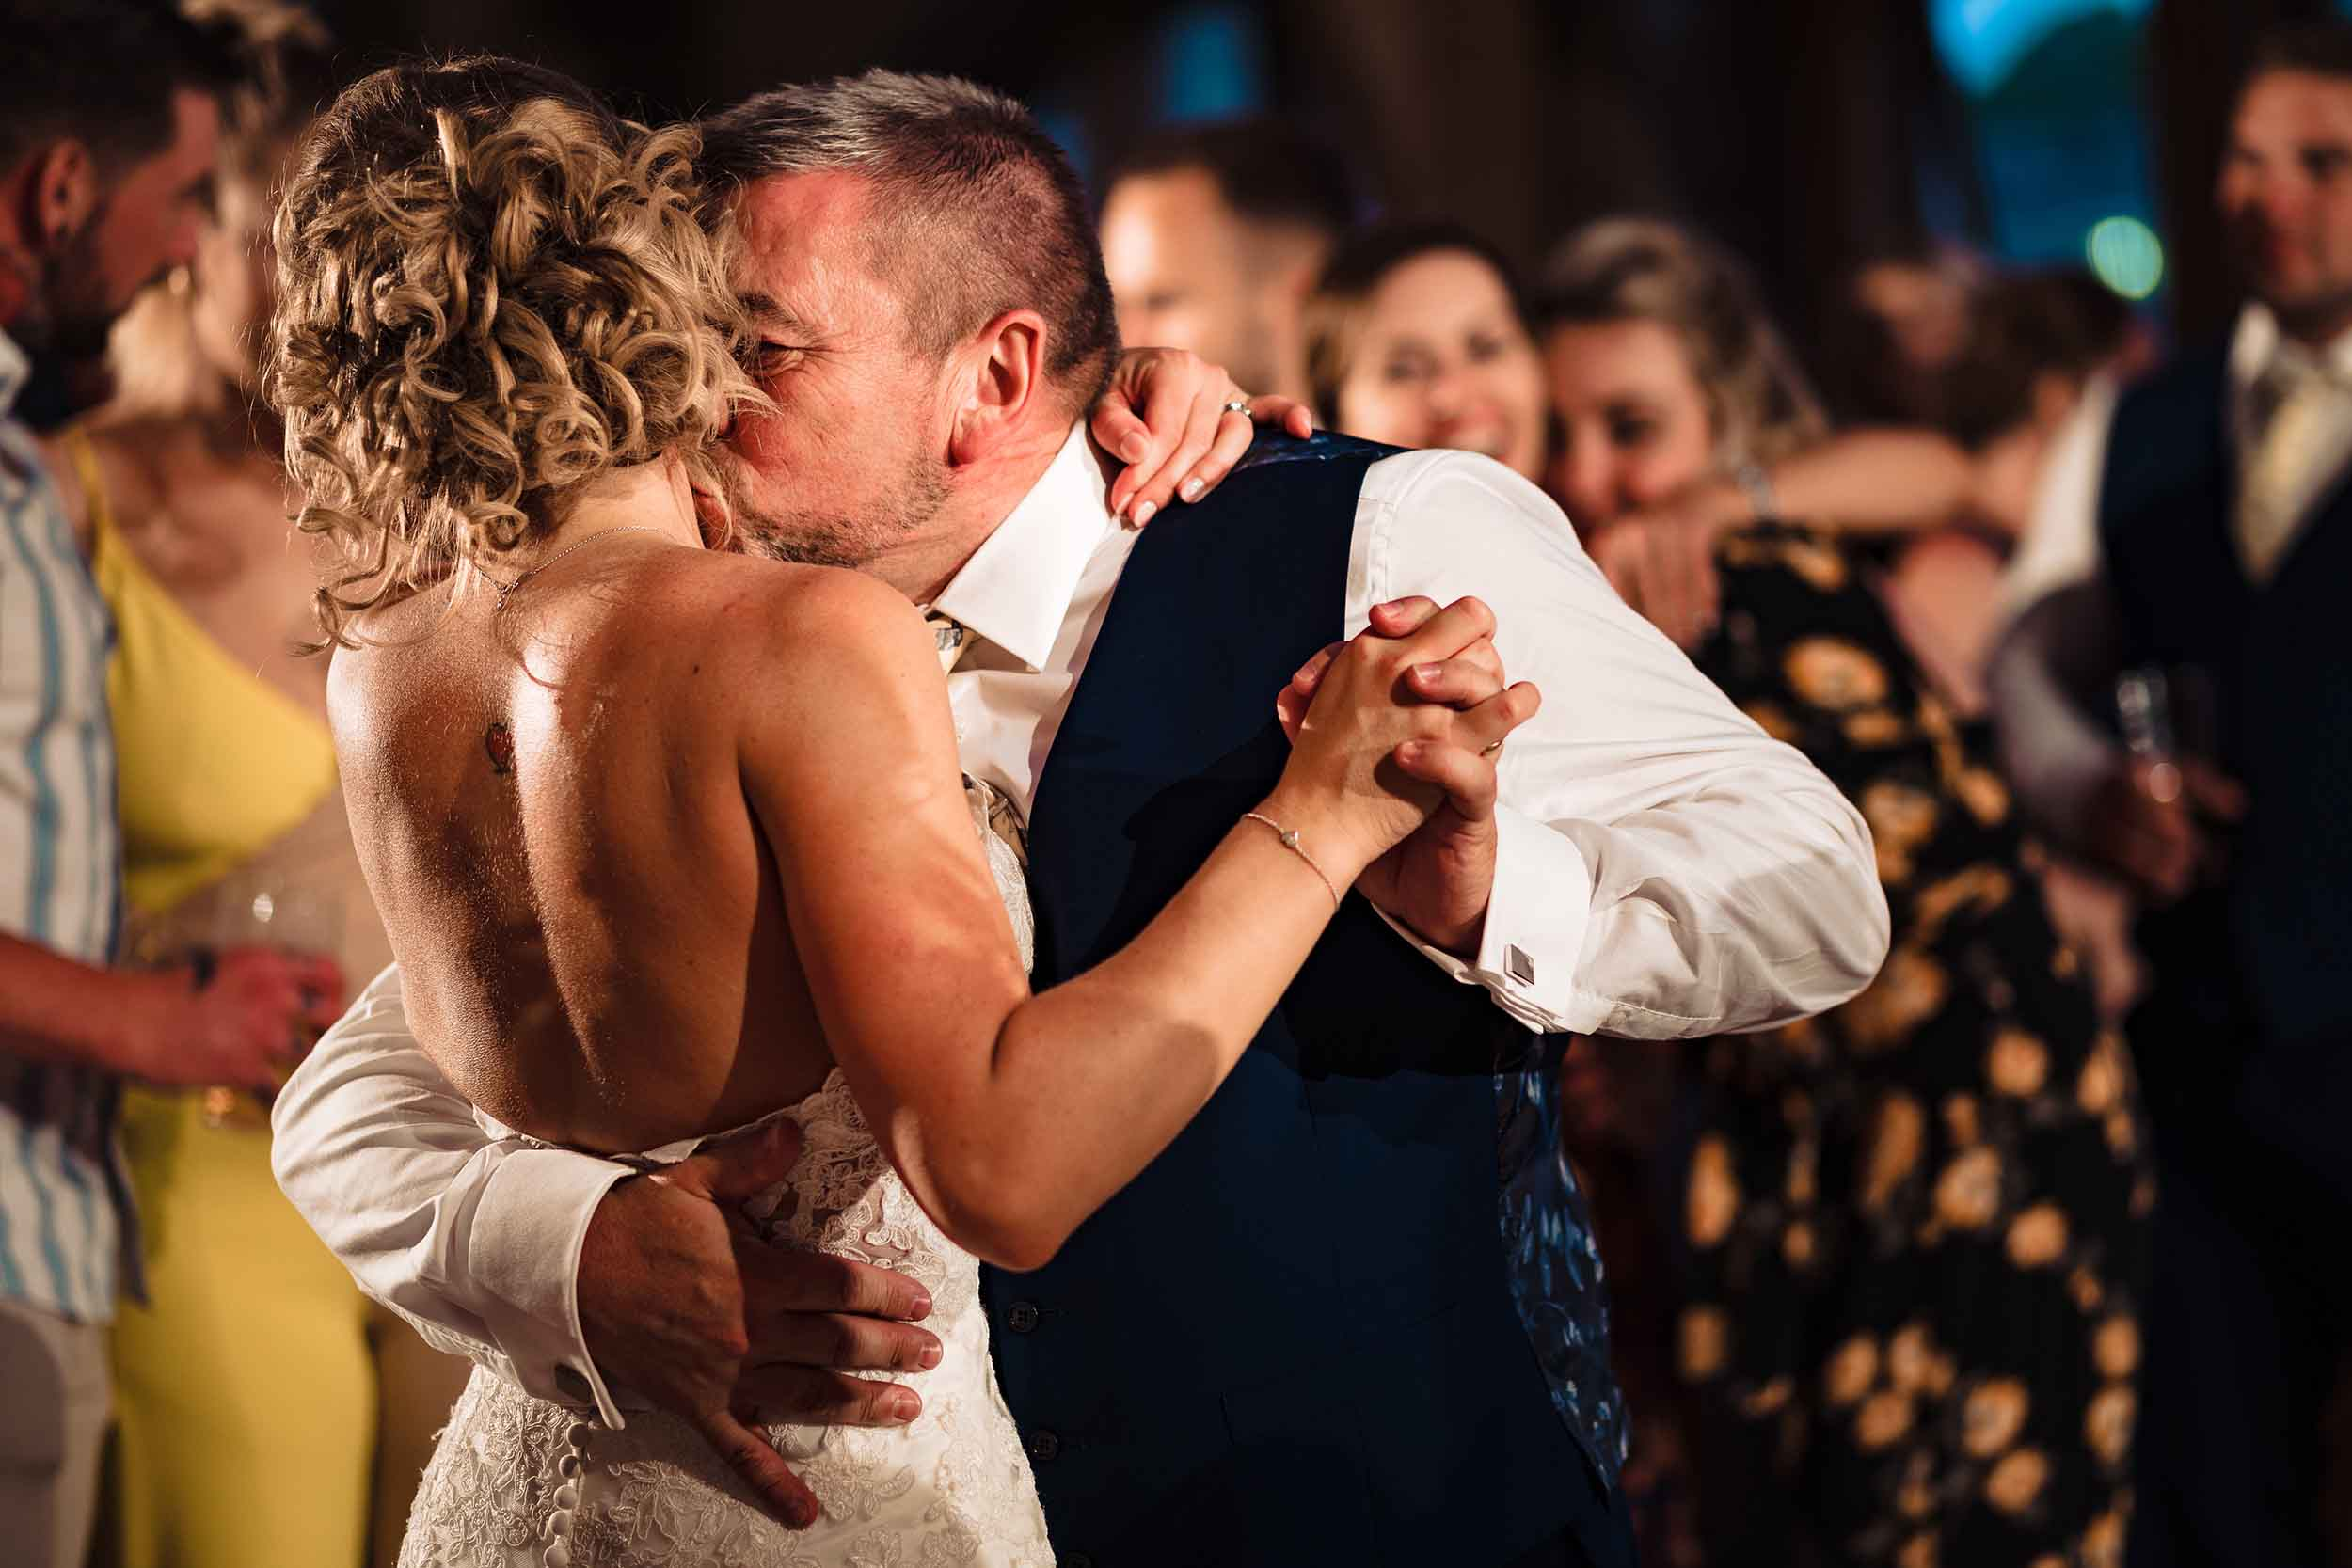 father of the bride kissing his daughter as they dance at a wedding